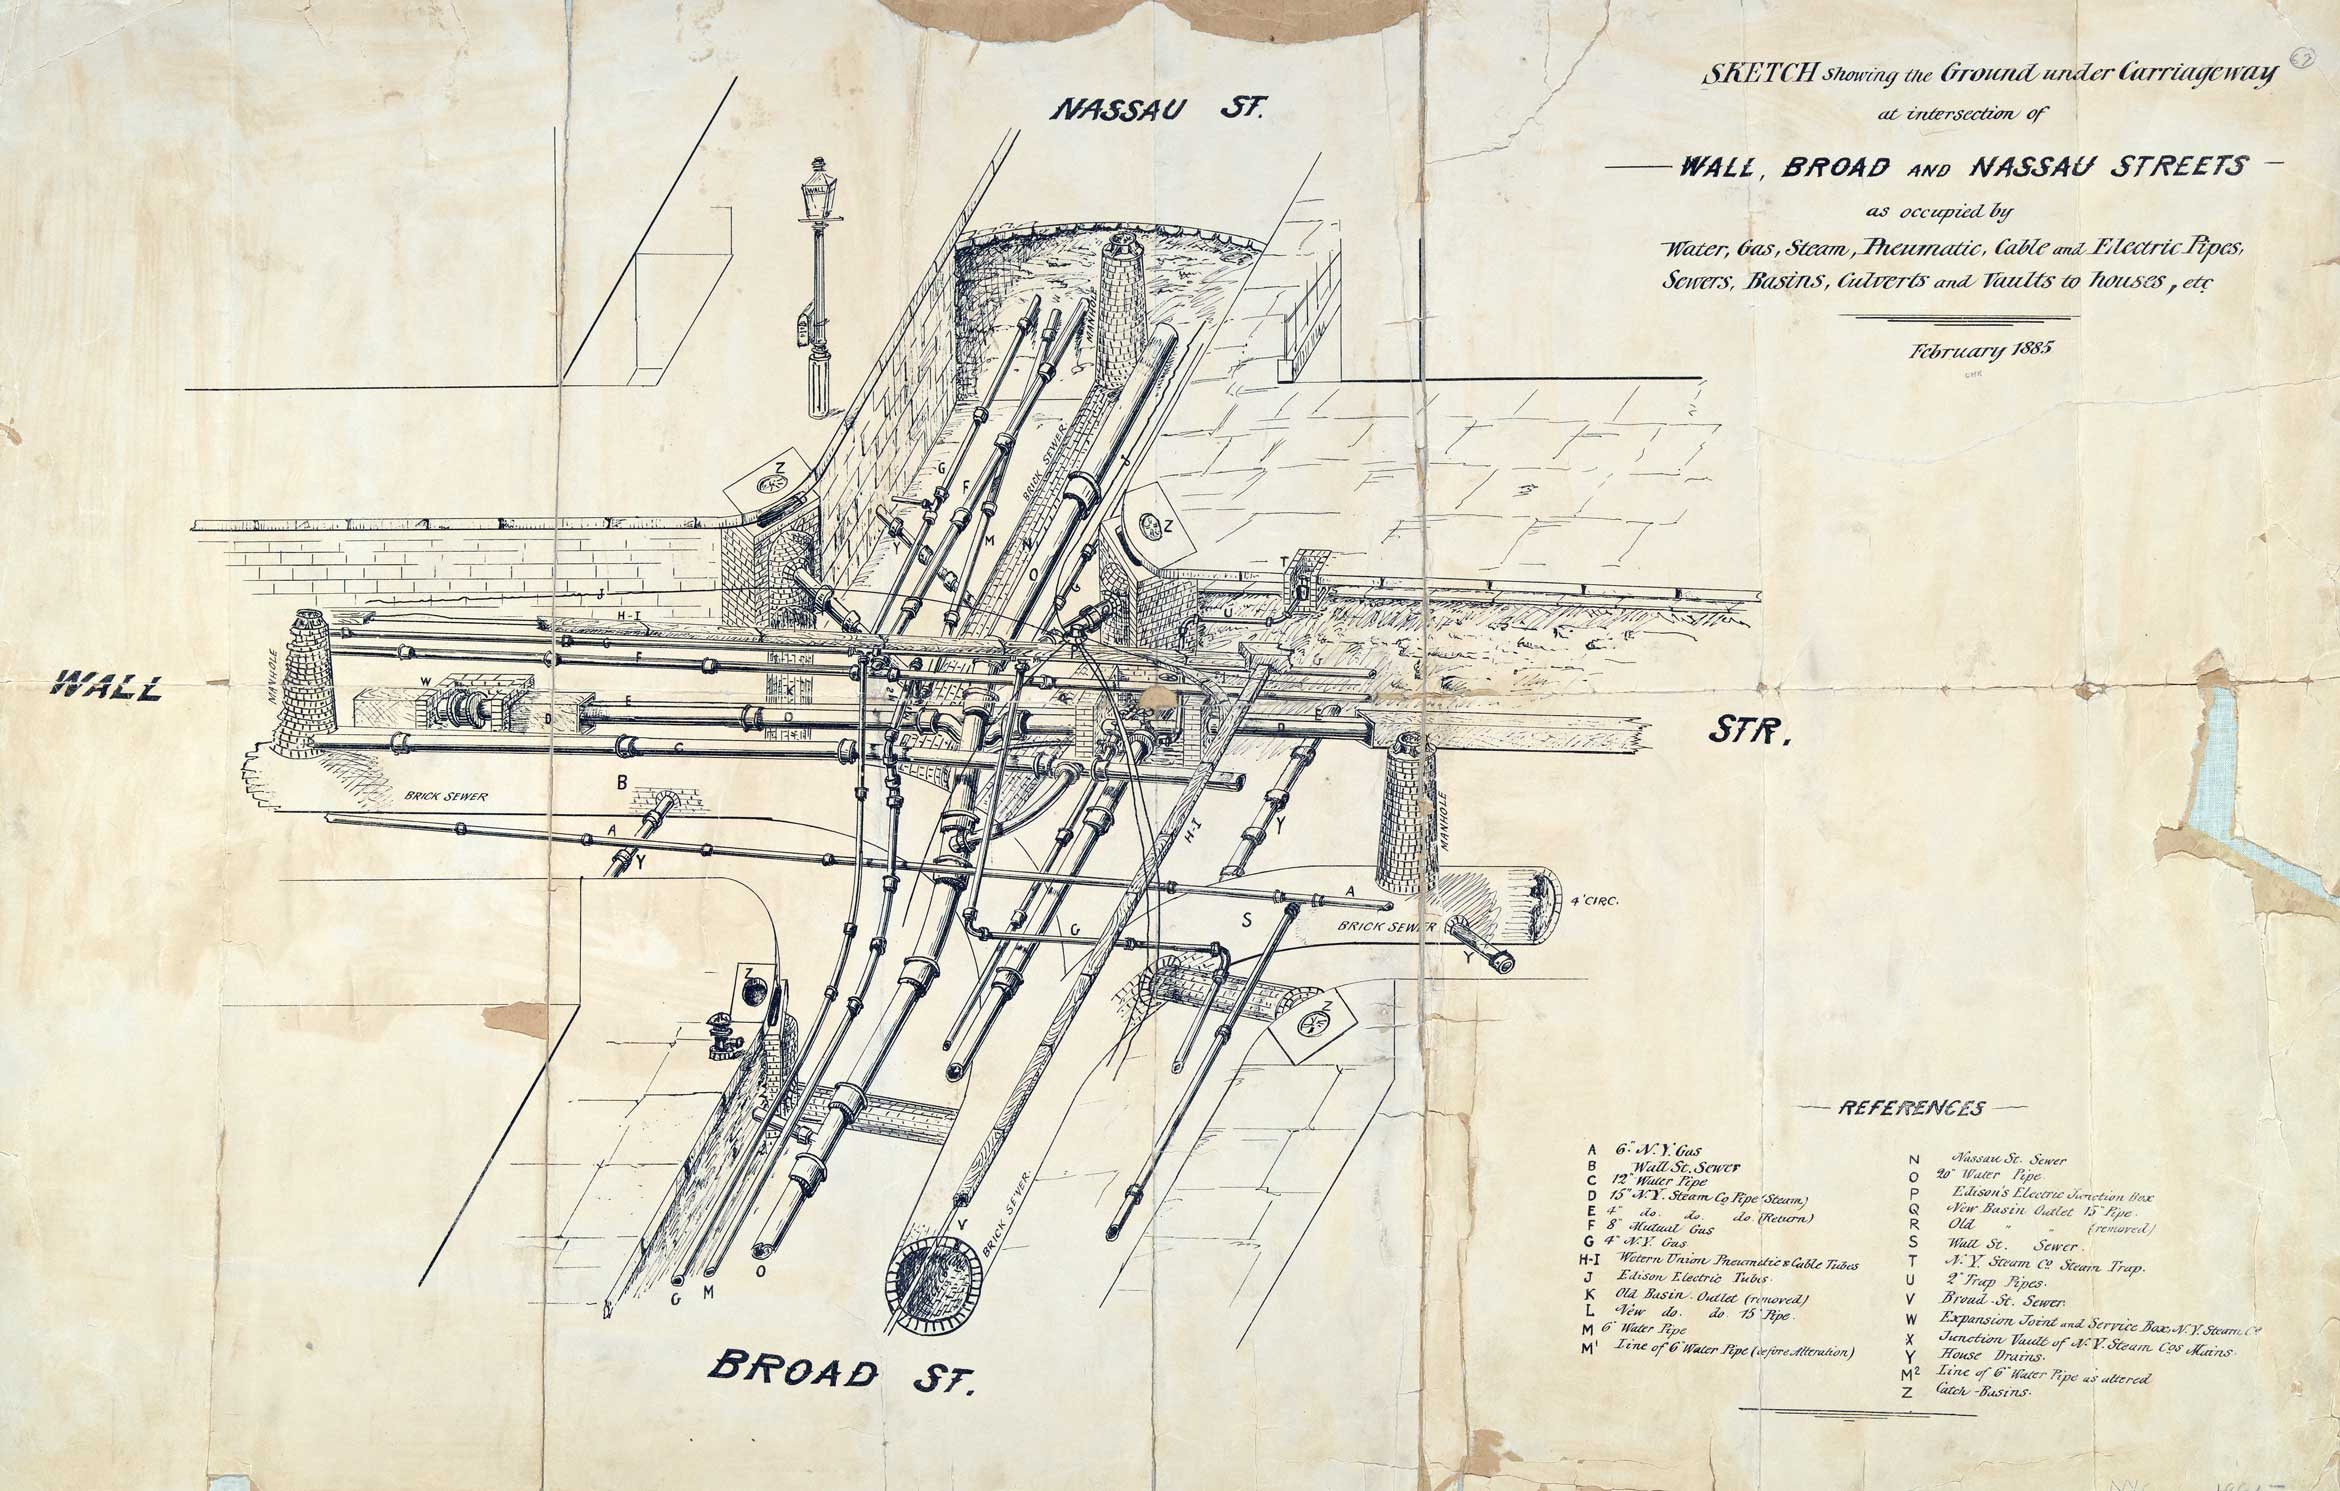 """Pipes and utilities under Wall, Broad, and Nassau Streets in 1885. Image via <a href=""""https://digitalcollections.nypl.org/items/c83b6c70-f3a2-0130-2afd-58d385a7b928"""">NYPL Digital Collections</a>"""